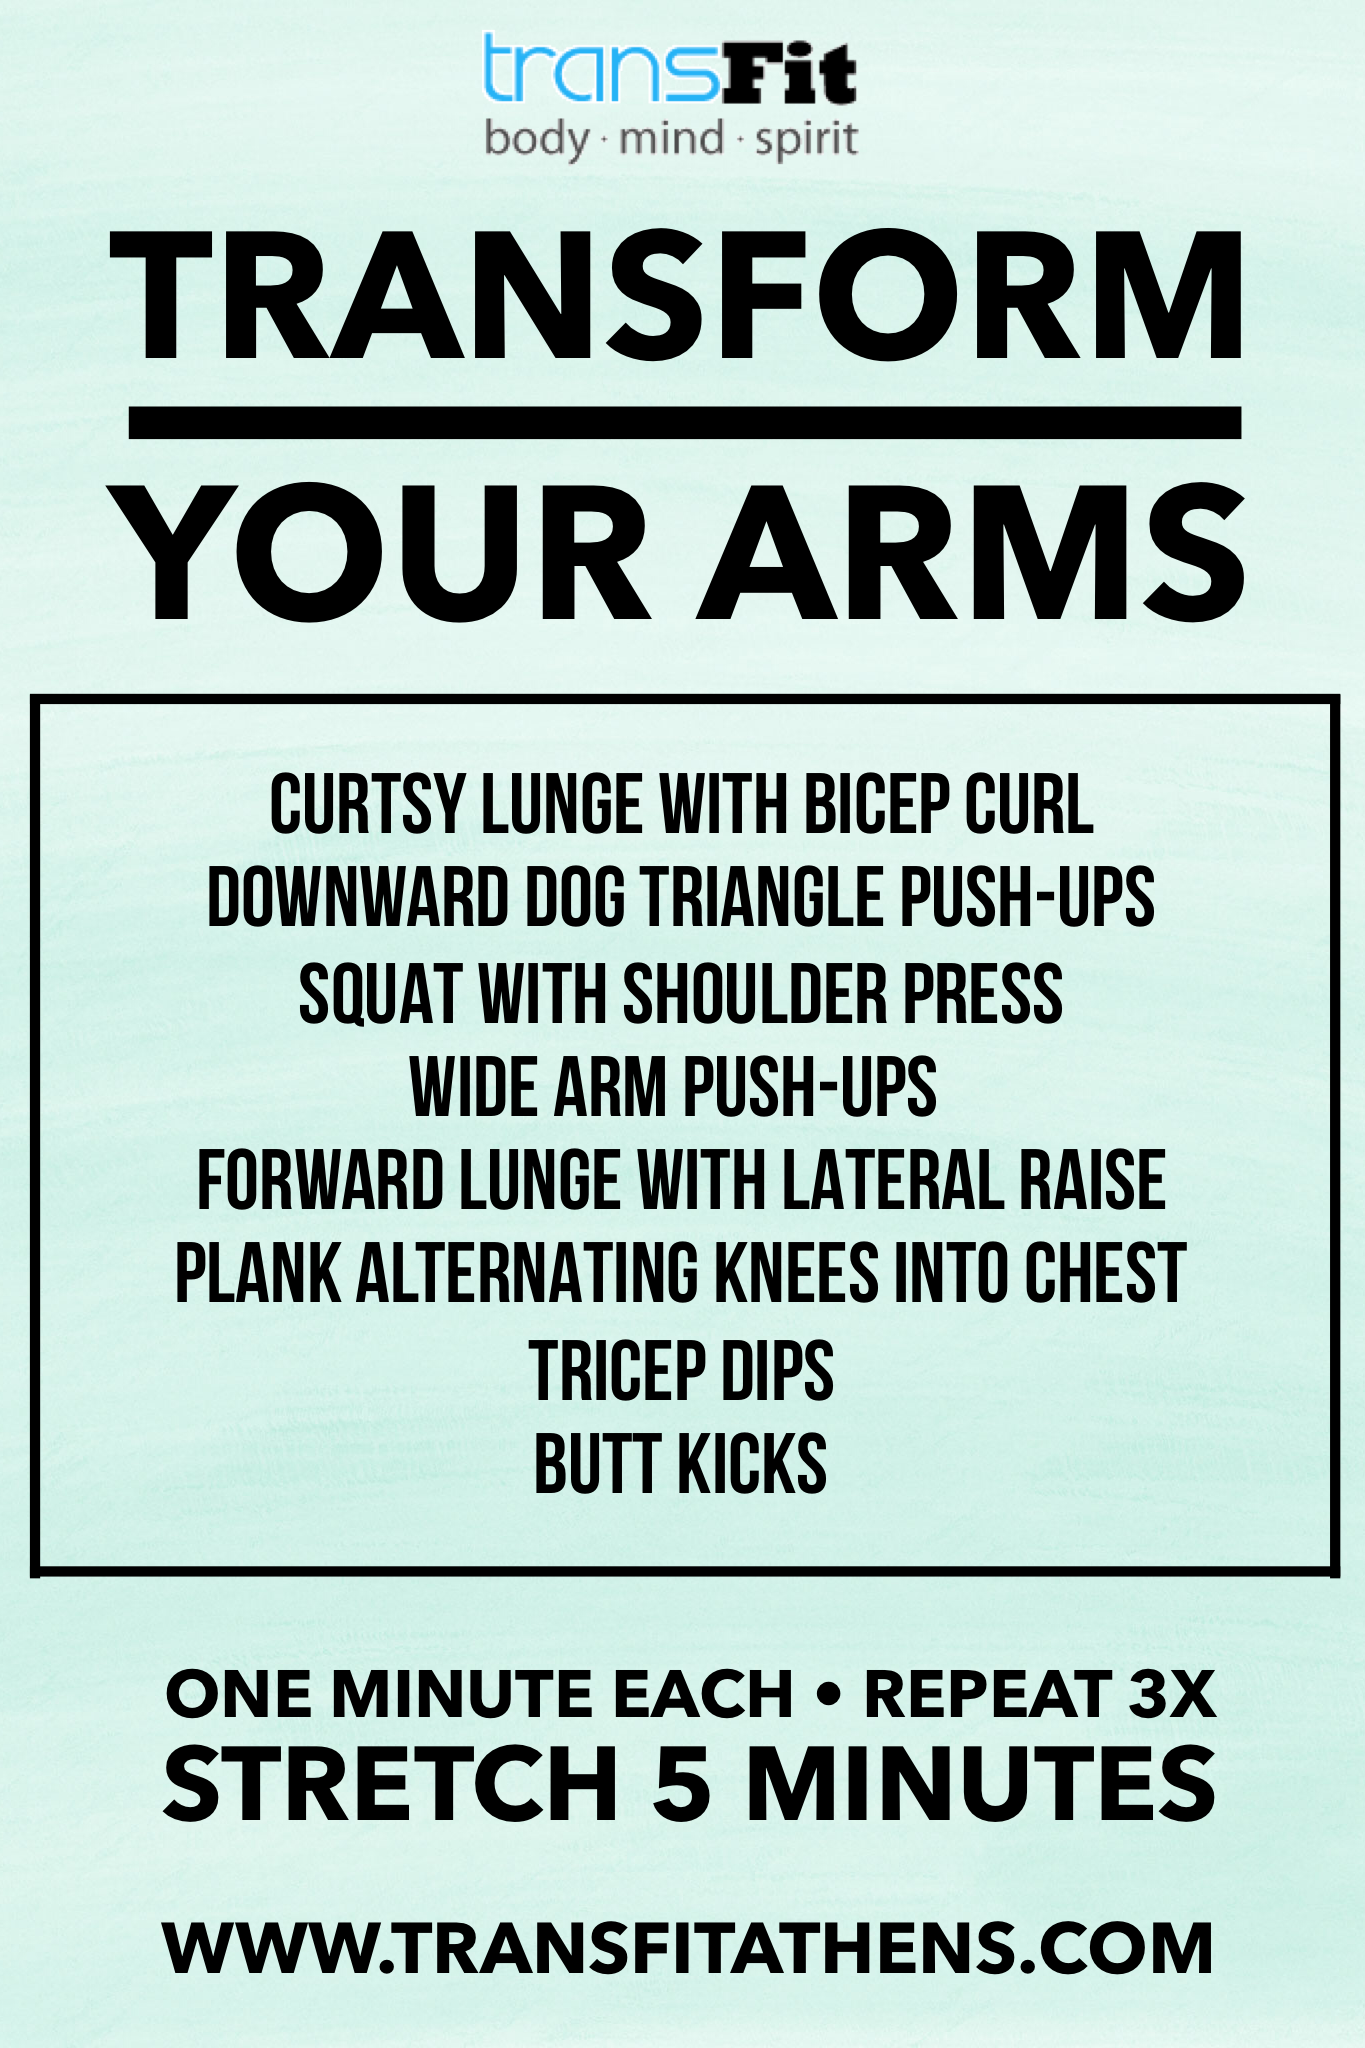 transform your arms new.PNG